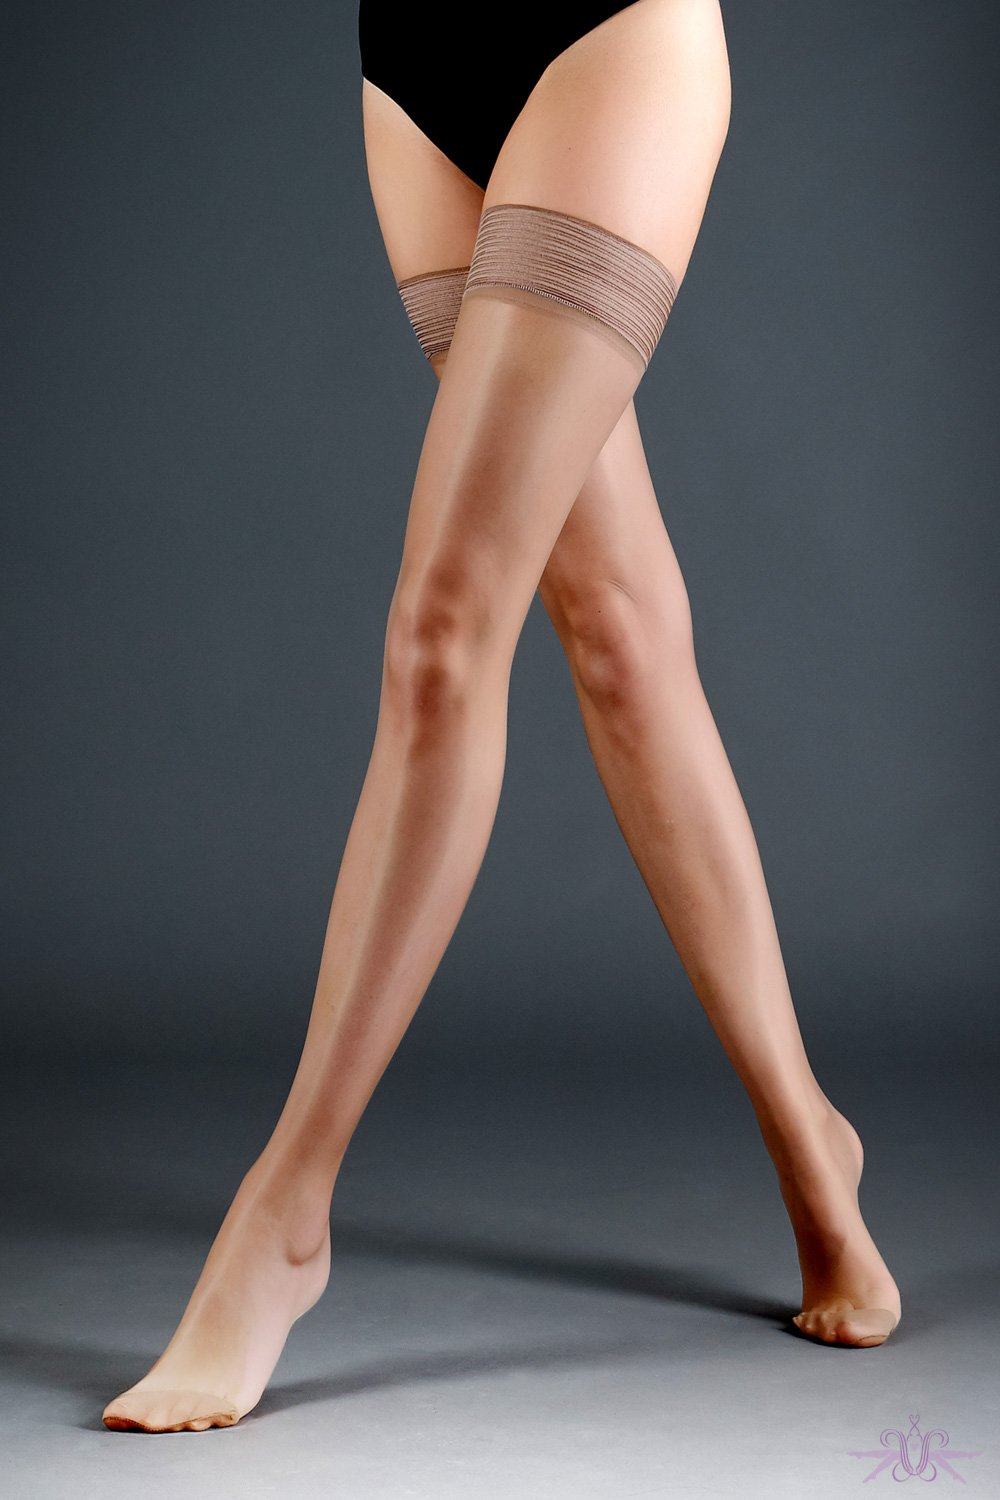 Bluebella Nude Plain Top Hold Ups